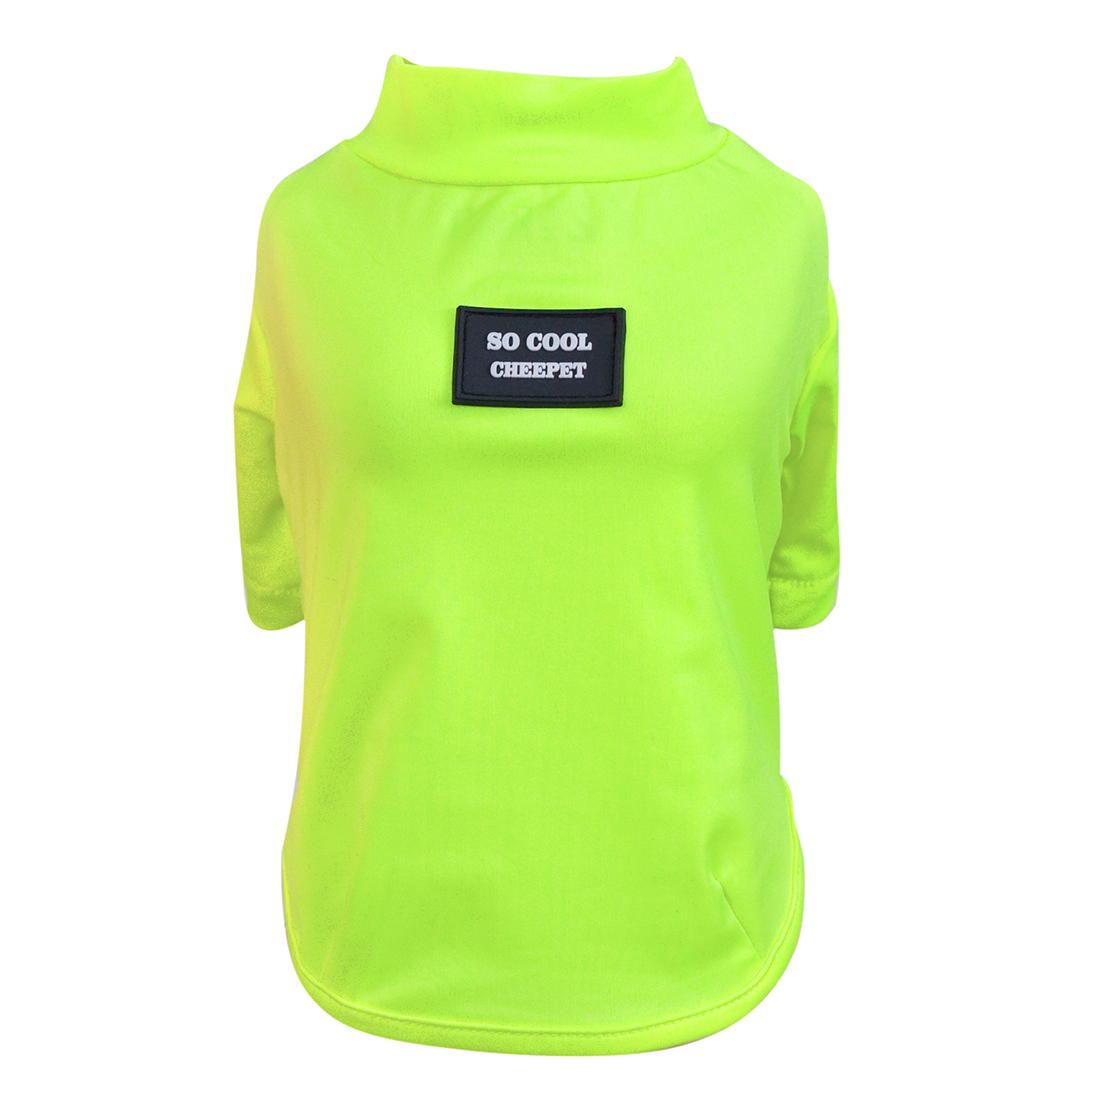 Cheepet Authorized Dog Cat Summer Shirt Clothes Bright Color Solid color Fluorescent Yellow XL